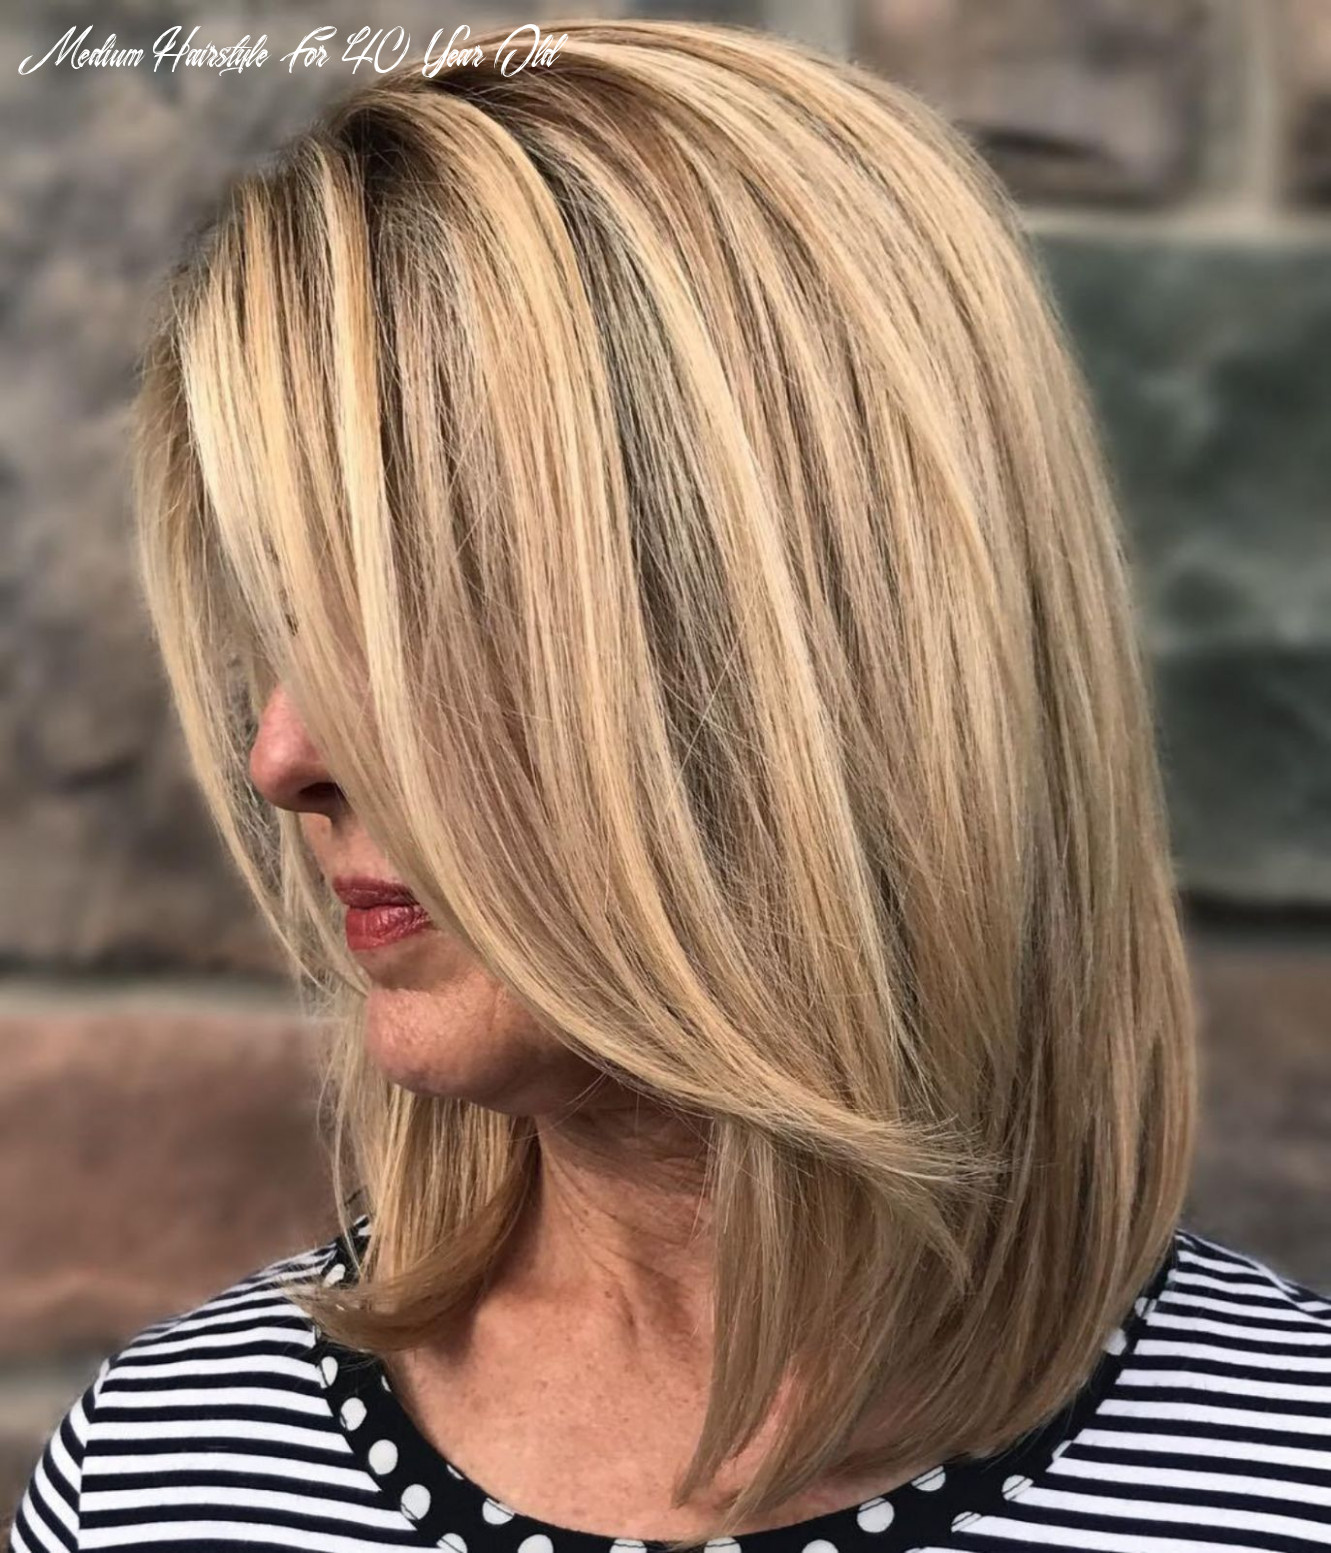 11 most prominent hairstyles for women over 11 | blonde bob